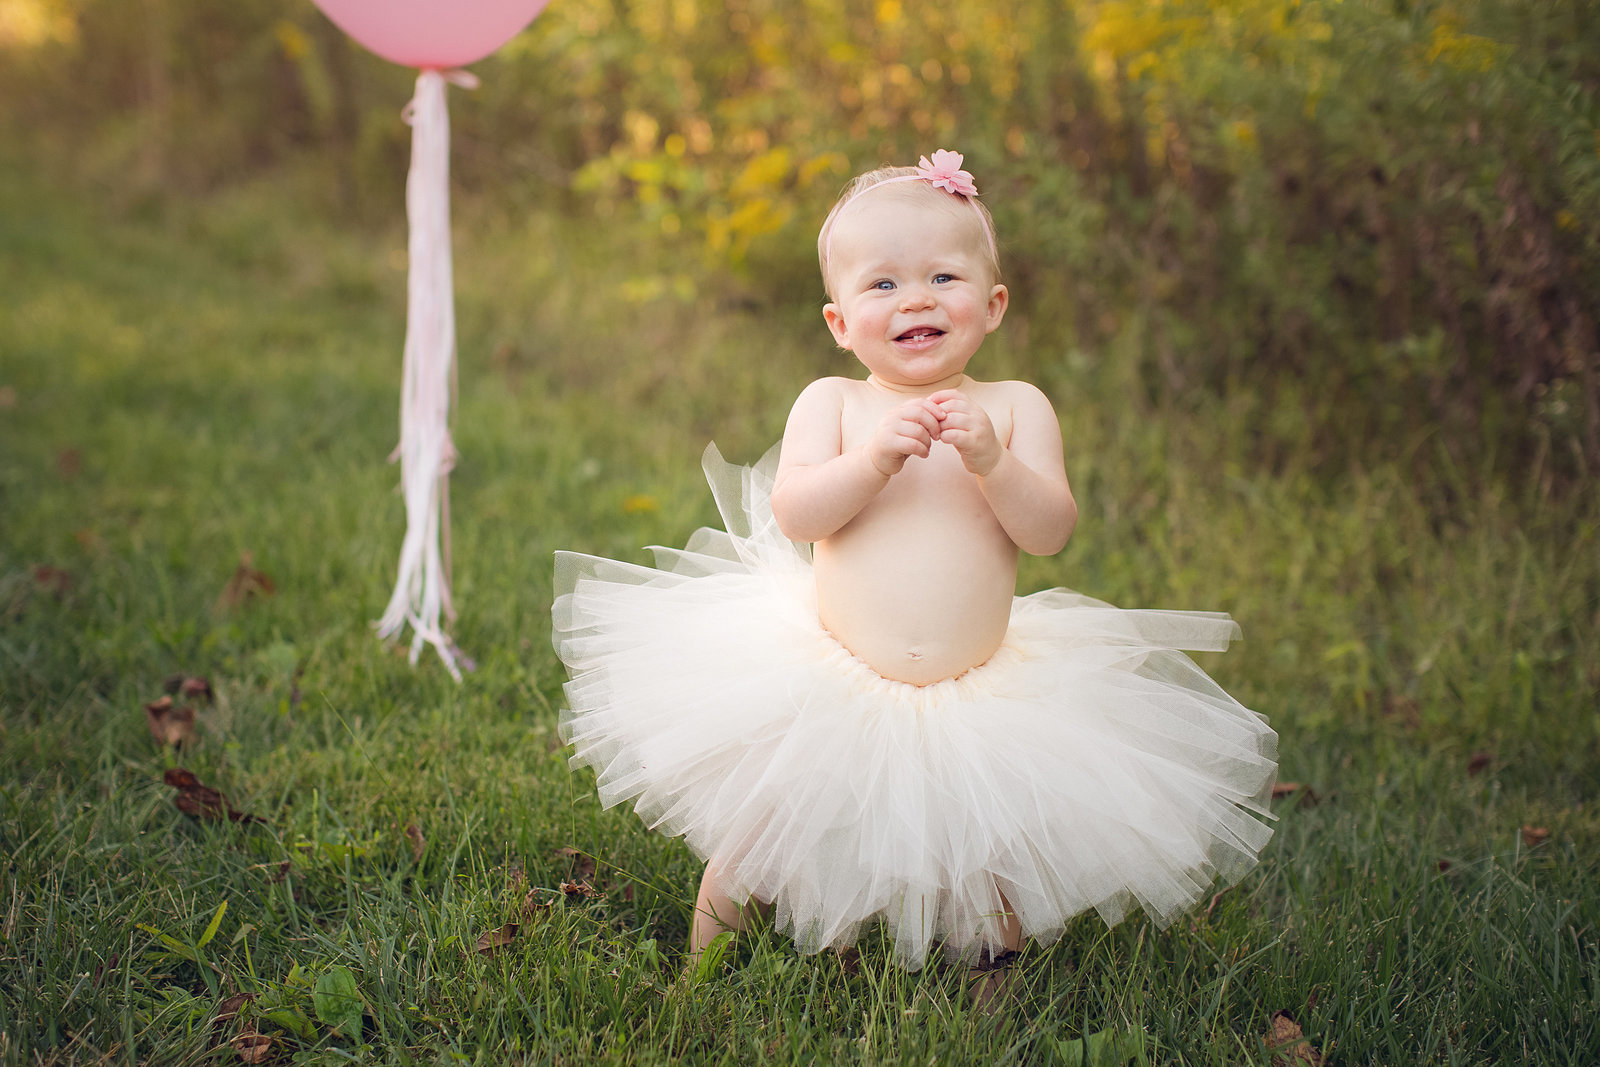 Smiling girl outside poses in pink tutu and smiling outside in grass